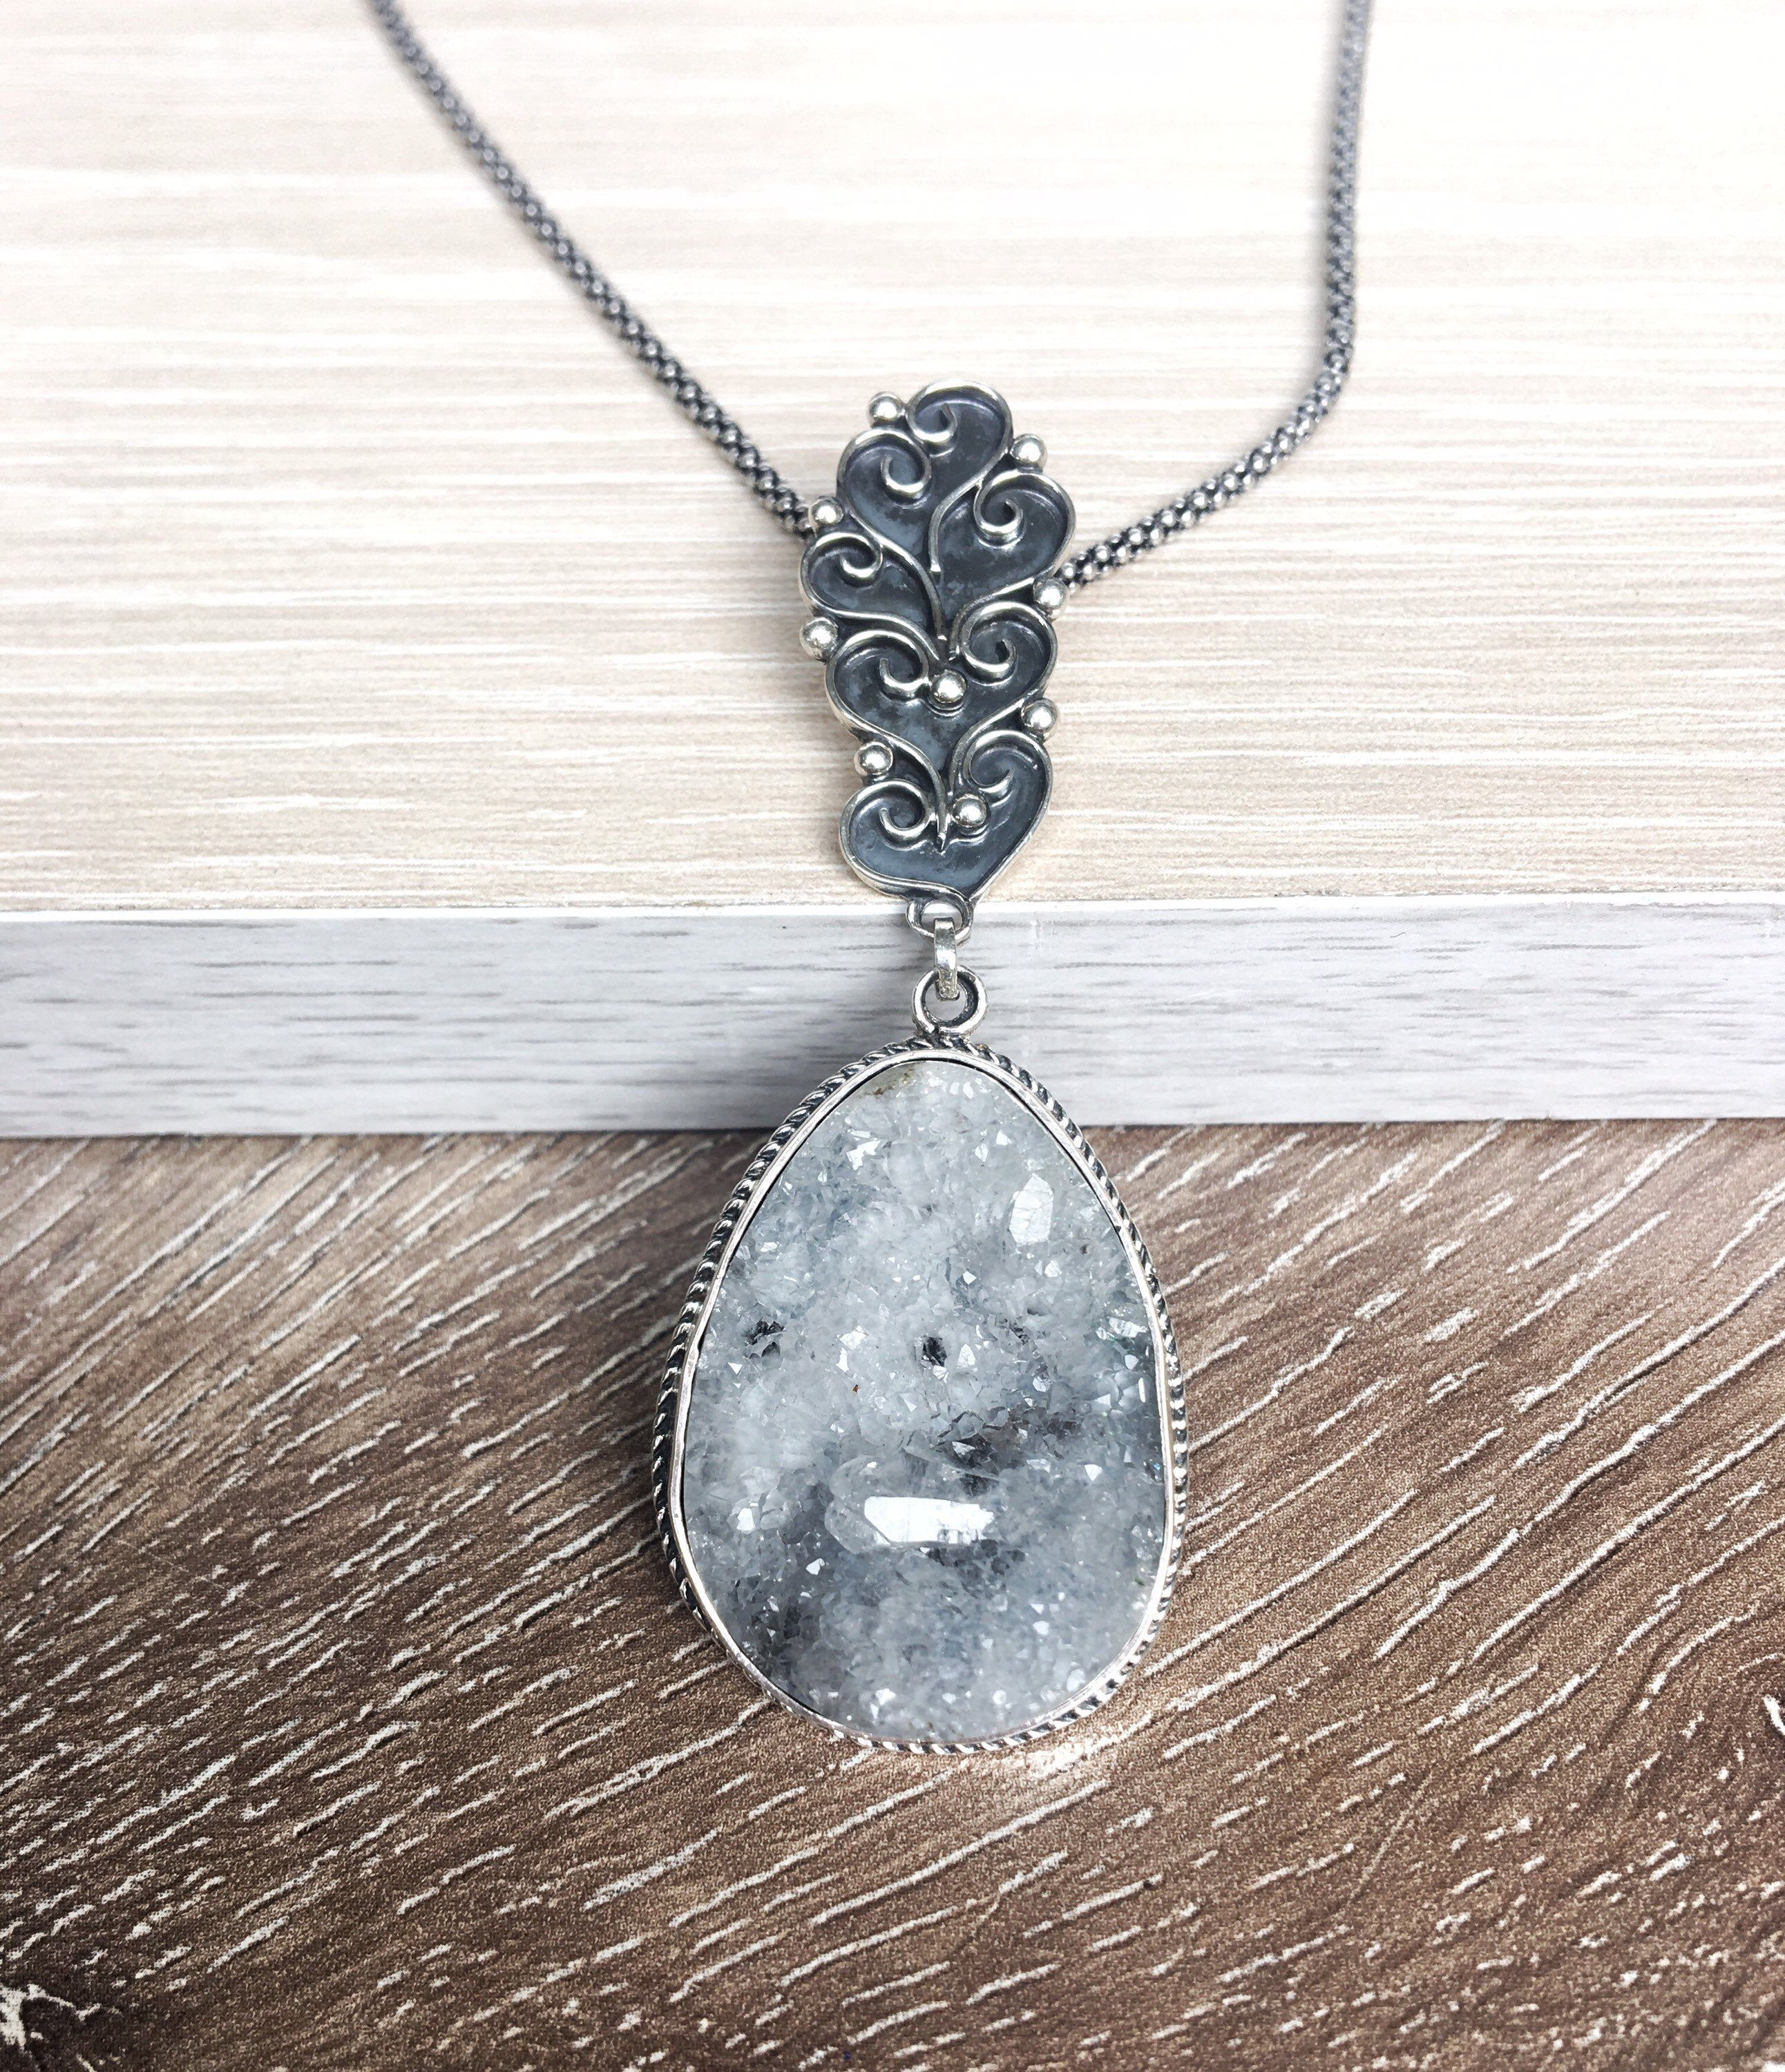 Agate Crystal Silver Pendant Oxidized Silver Necklace With Agate Stone For Girls Gray Stone Pendant Gemstone Silver Pendants Armenia In 2020 Oxidized Silver Necklace Agate Crystal Oxidised Silver Jewelry